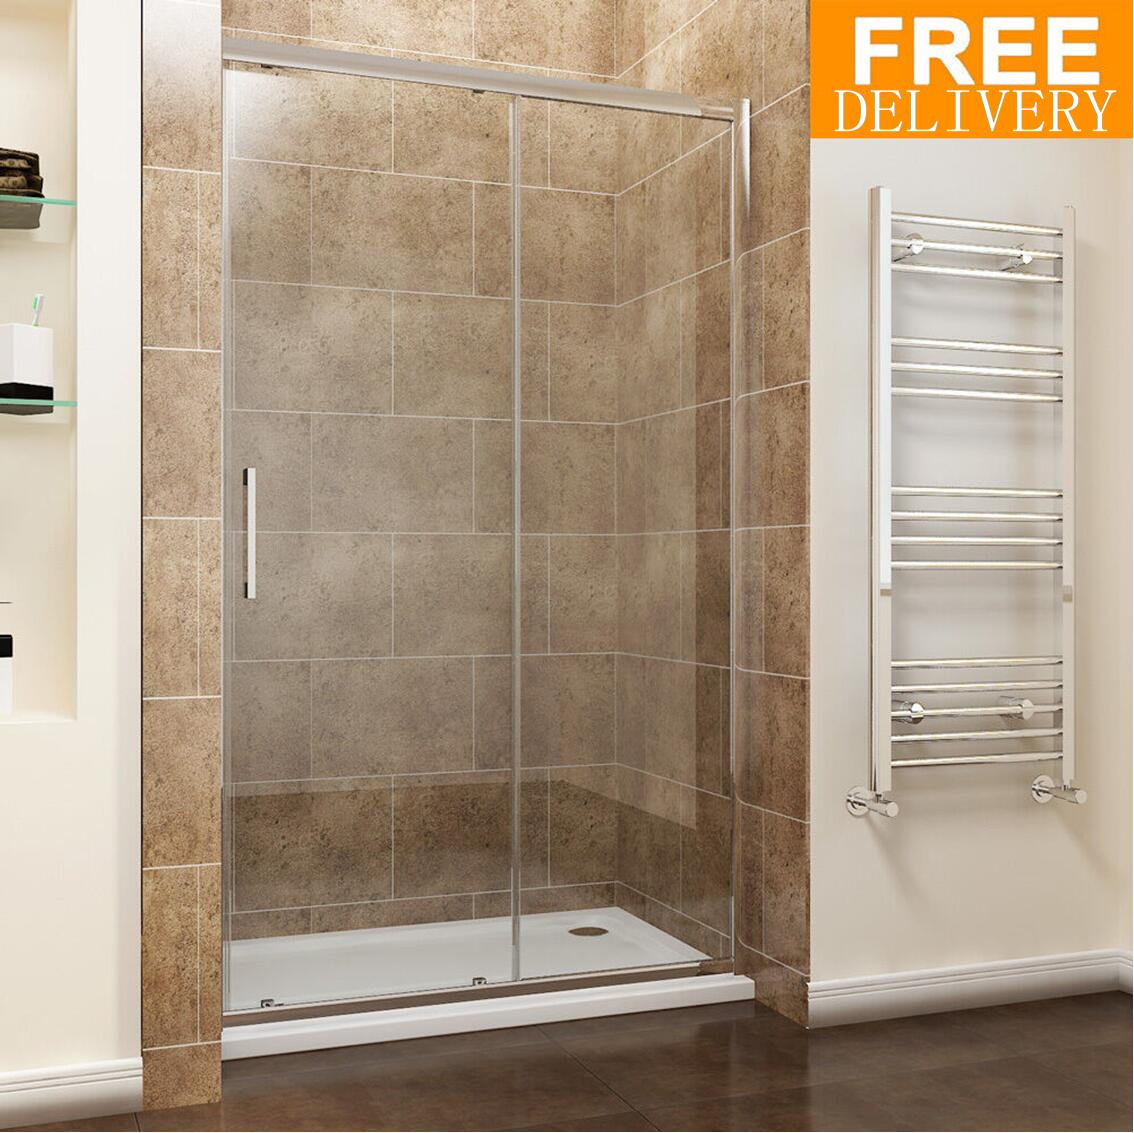 Sliding Walk In Shower Doors.Details About Sliding Shower Door Enclosure Walk In Shower Cubicle 8mm Easy Clean Glass Tall